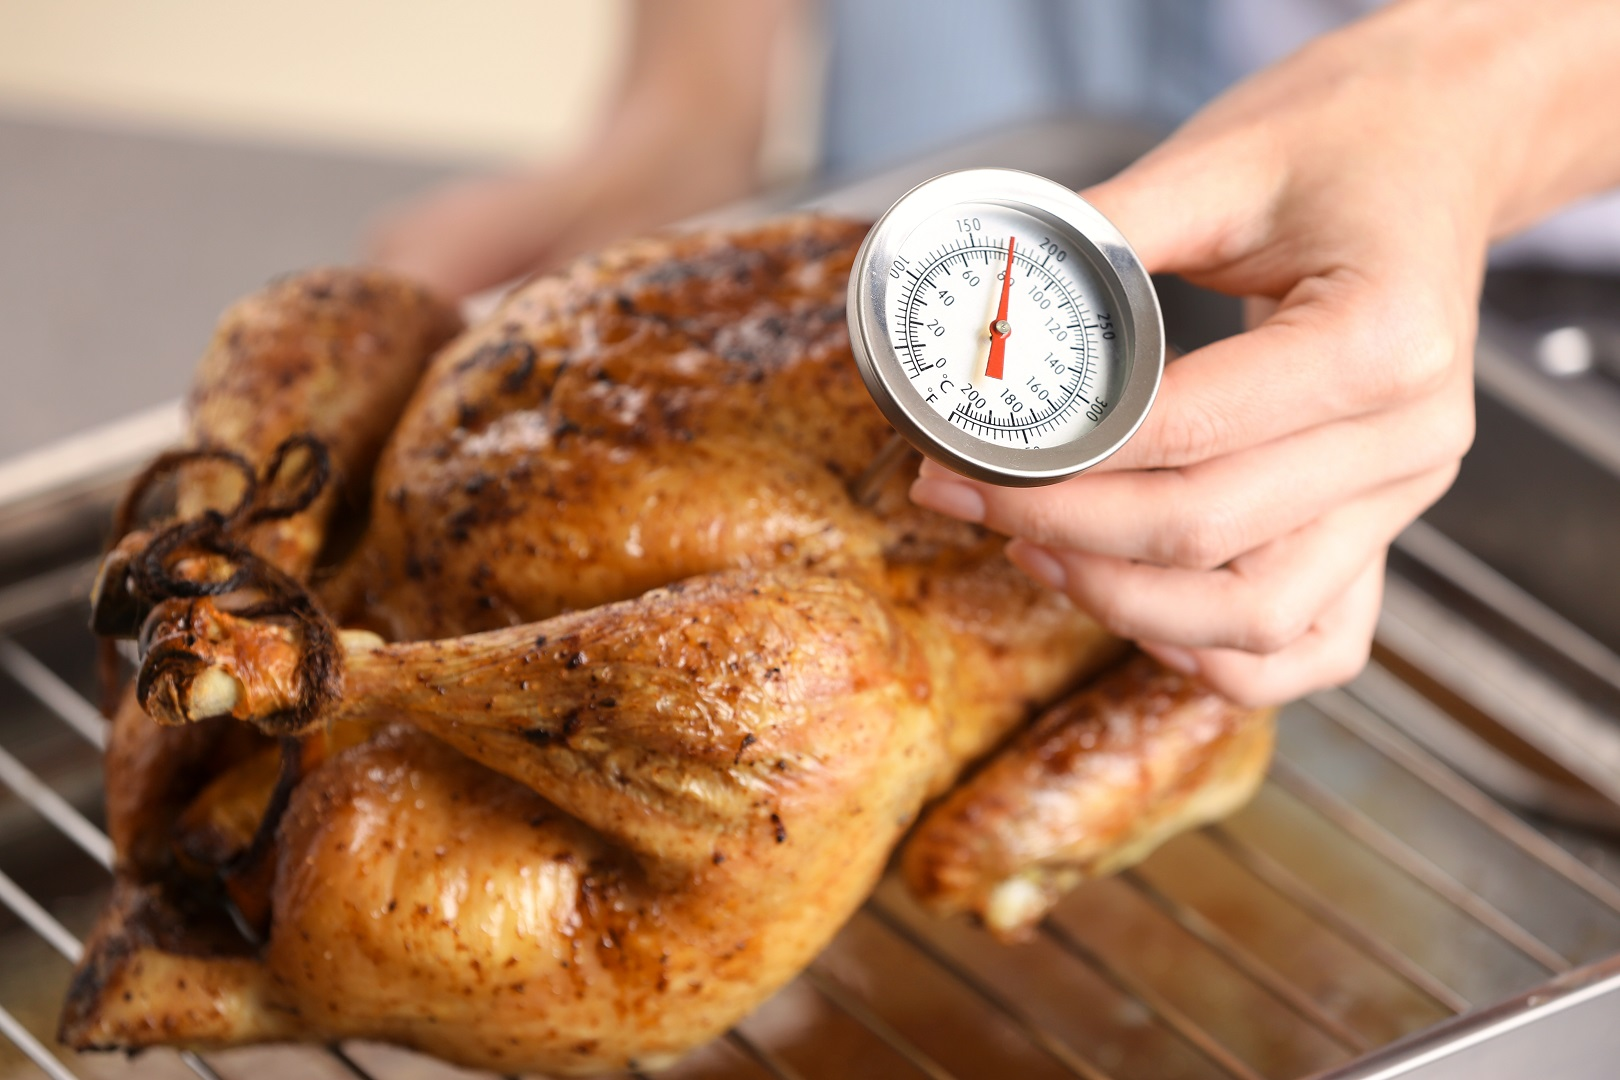 Food Safety Temperatures: Your Holiday Cooking Cheat Sheet